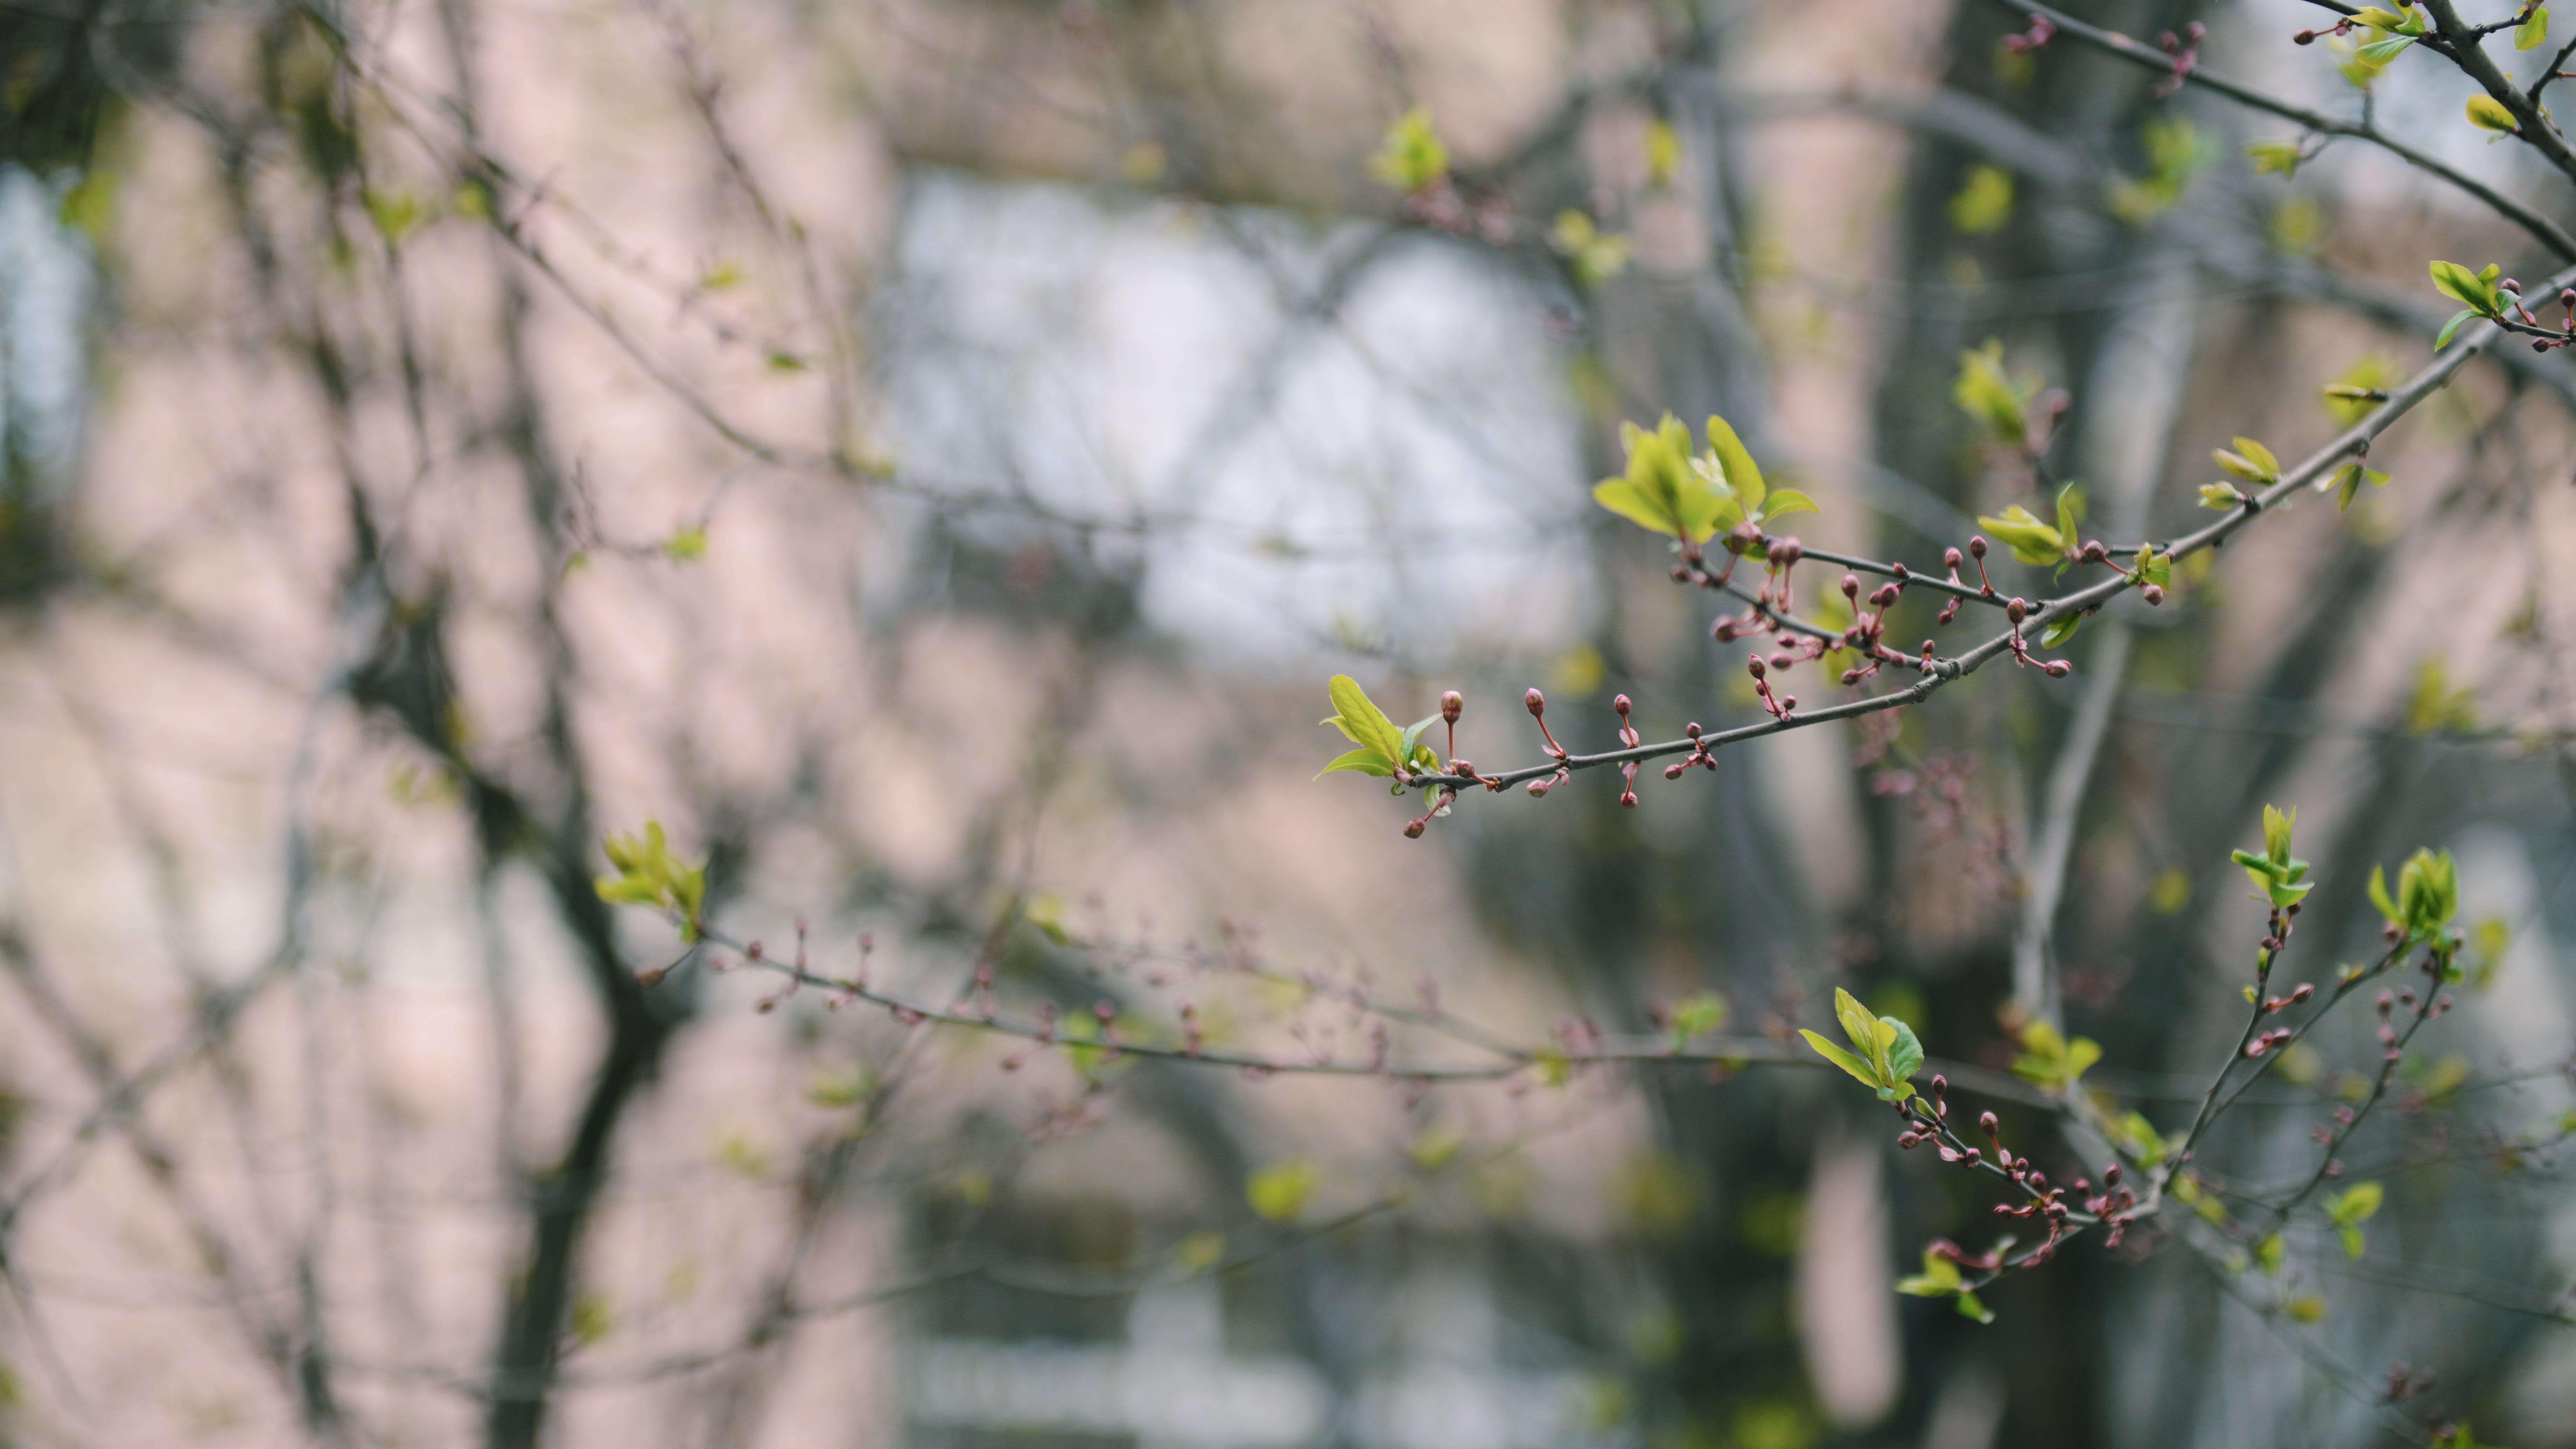 Selective Focus Photography of Green Leaf Plant With Purple Buds